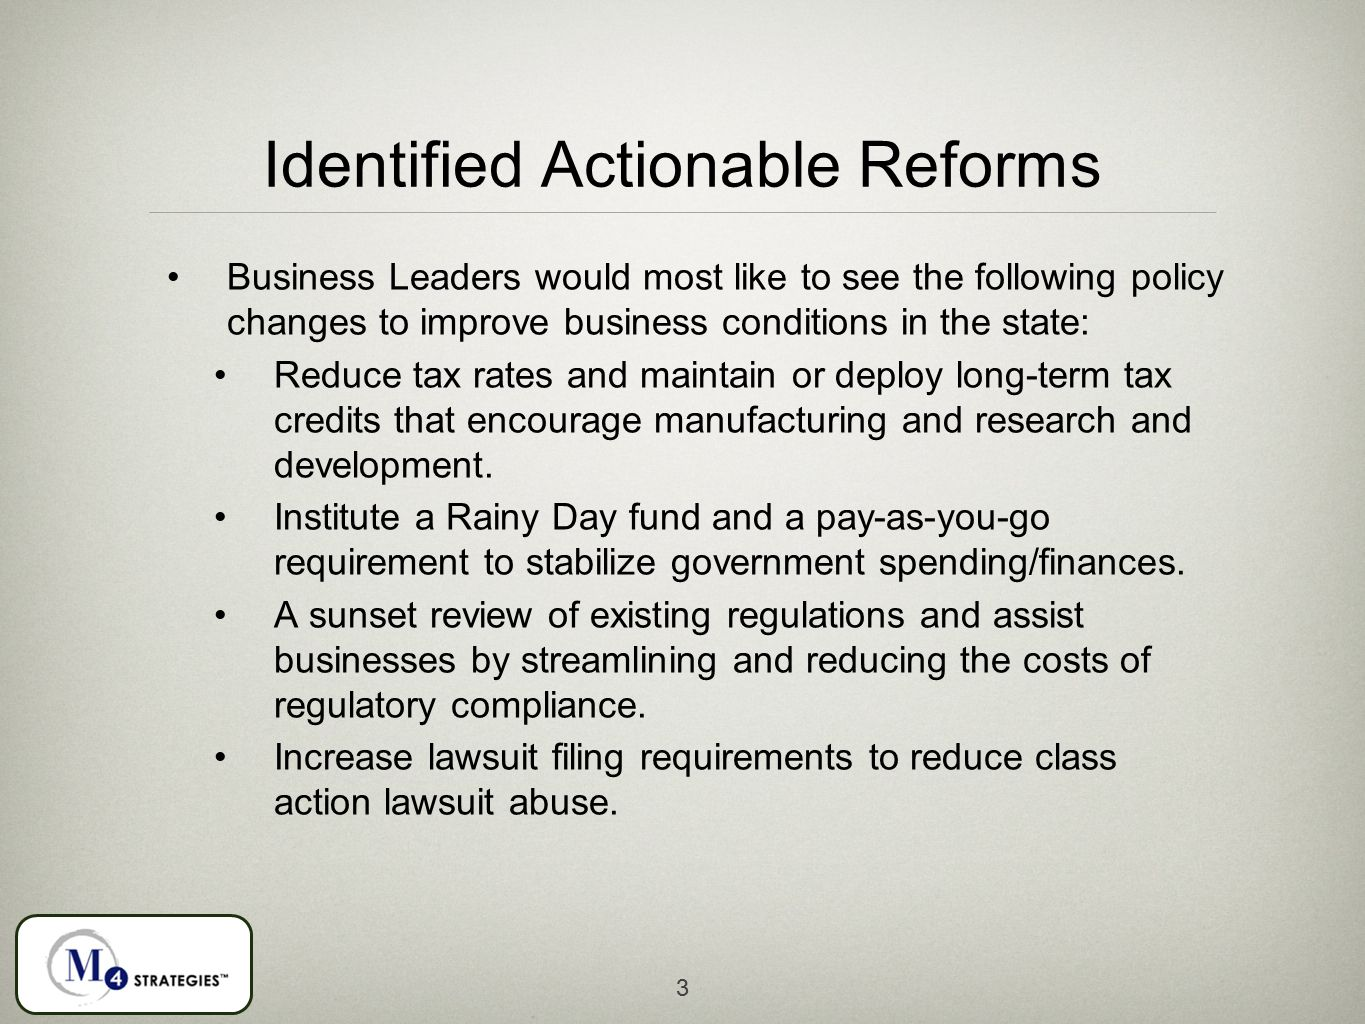 Identified Actionable Reforms Business Leaders would most like to see the following policy changes to improve business conditions in the state: Reduce tax rates and maintain or deploy long-term tax credits that encourage manufacturing and research and development.